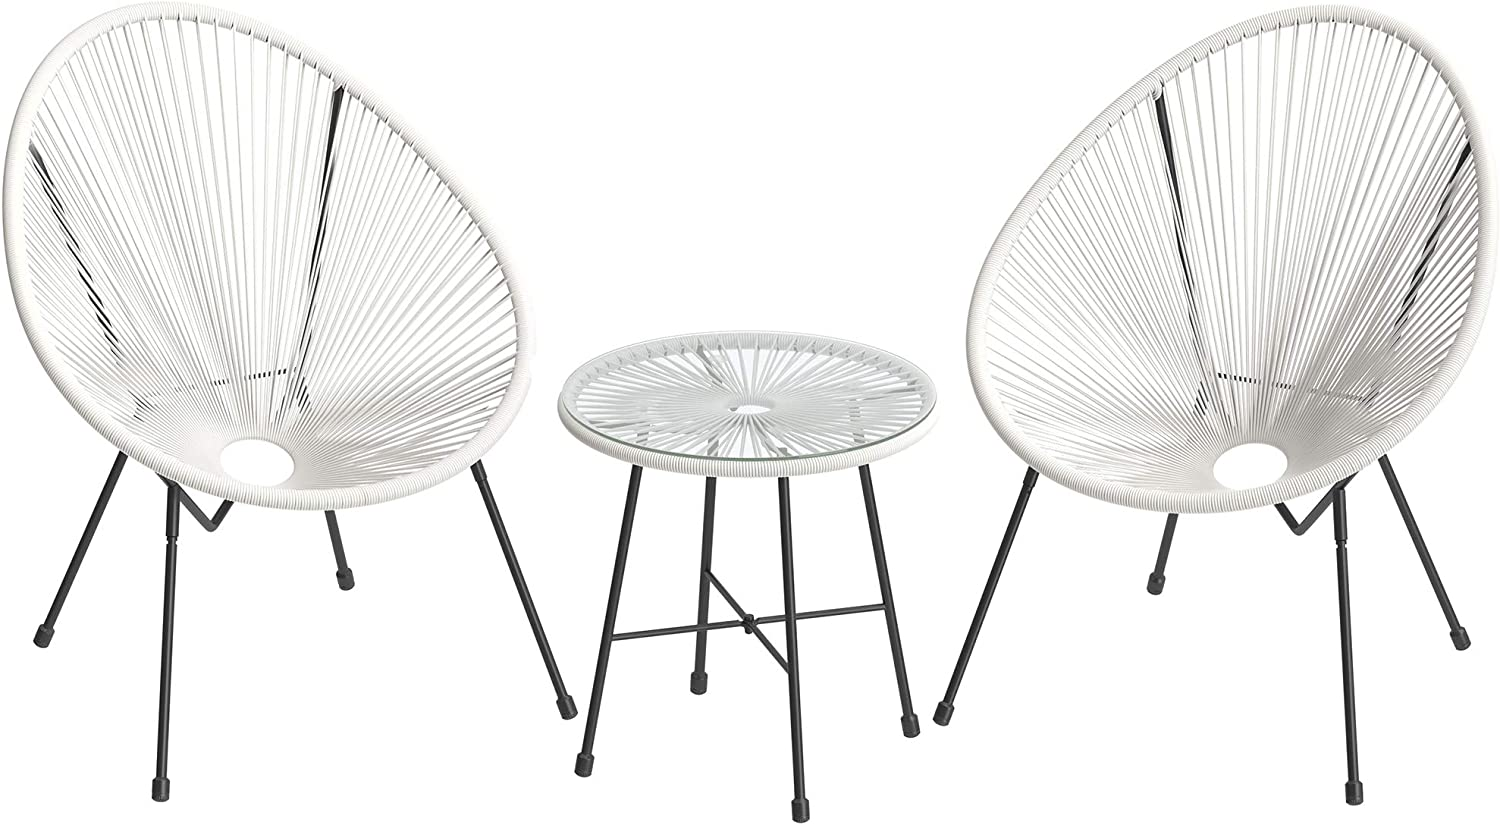 SONGMICS 3-Piece Outdoor Seating Acapulco Chair, Modern Patio Furniture Set, Glass Top Table and 2 Chairs, Indoor and Outdoor Conversation Set, White UGGF011W01